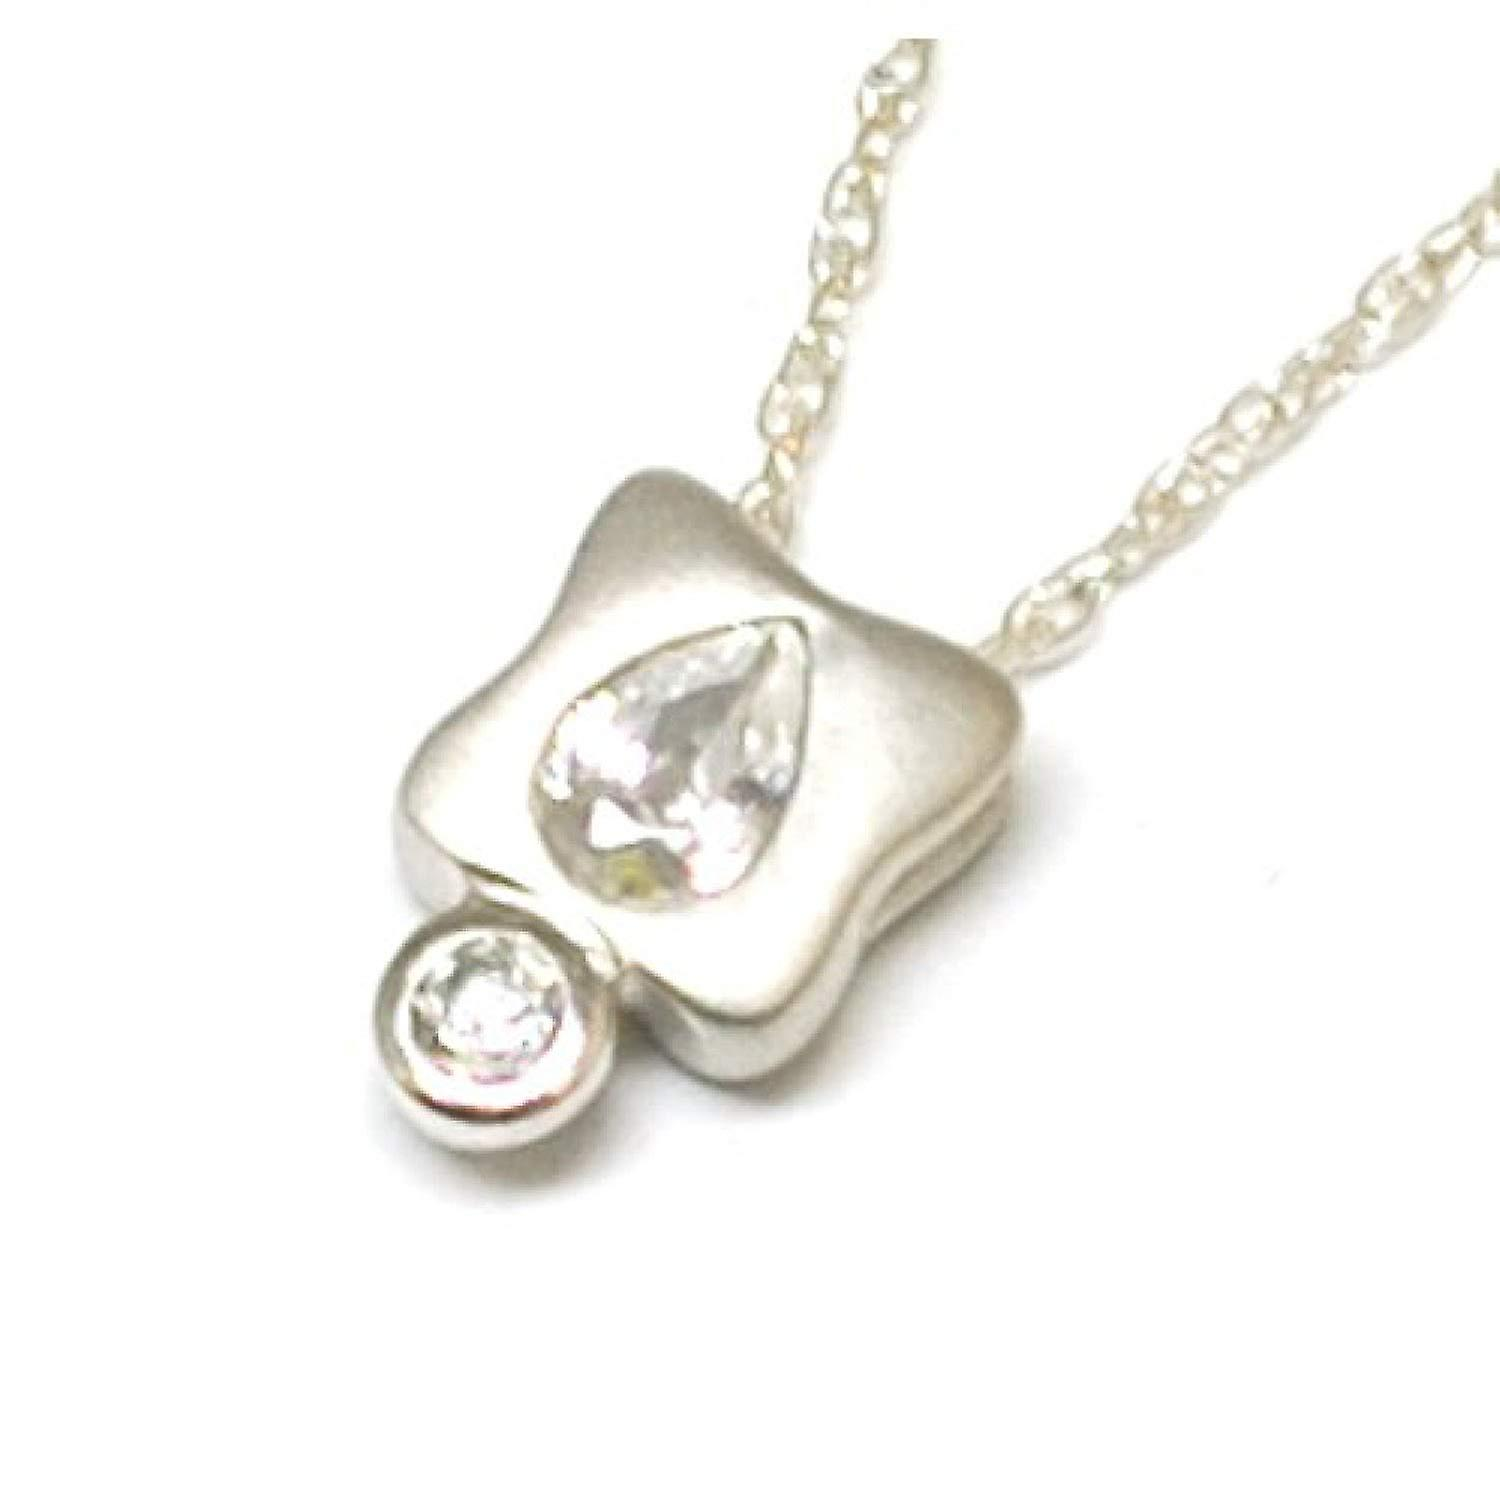 Toc Sterling Silver Matte Pendant with Pear Shaped Cz Pendant